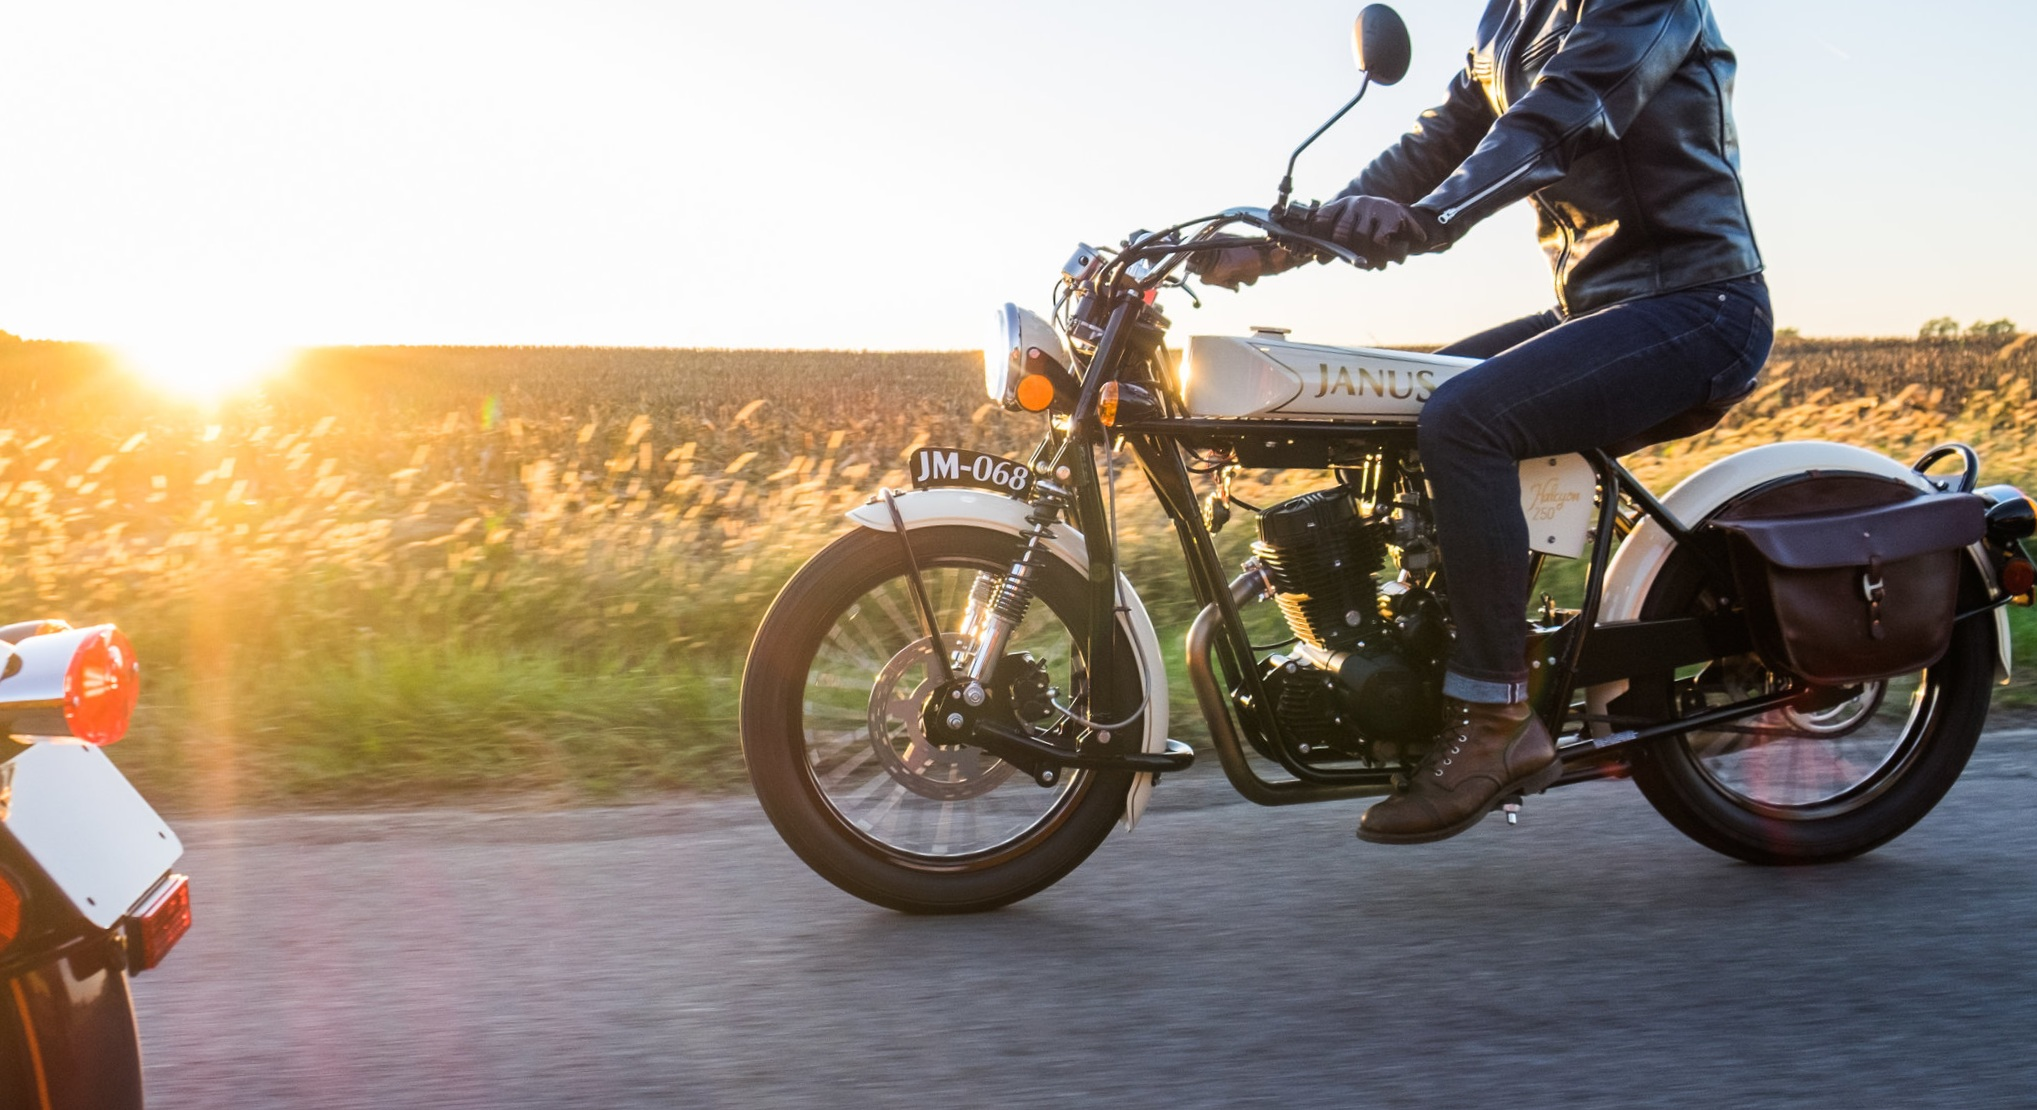 Discover the Simple Joy of Motorcycling